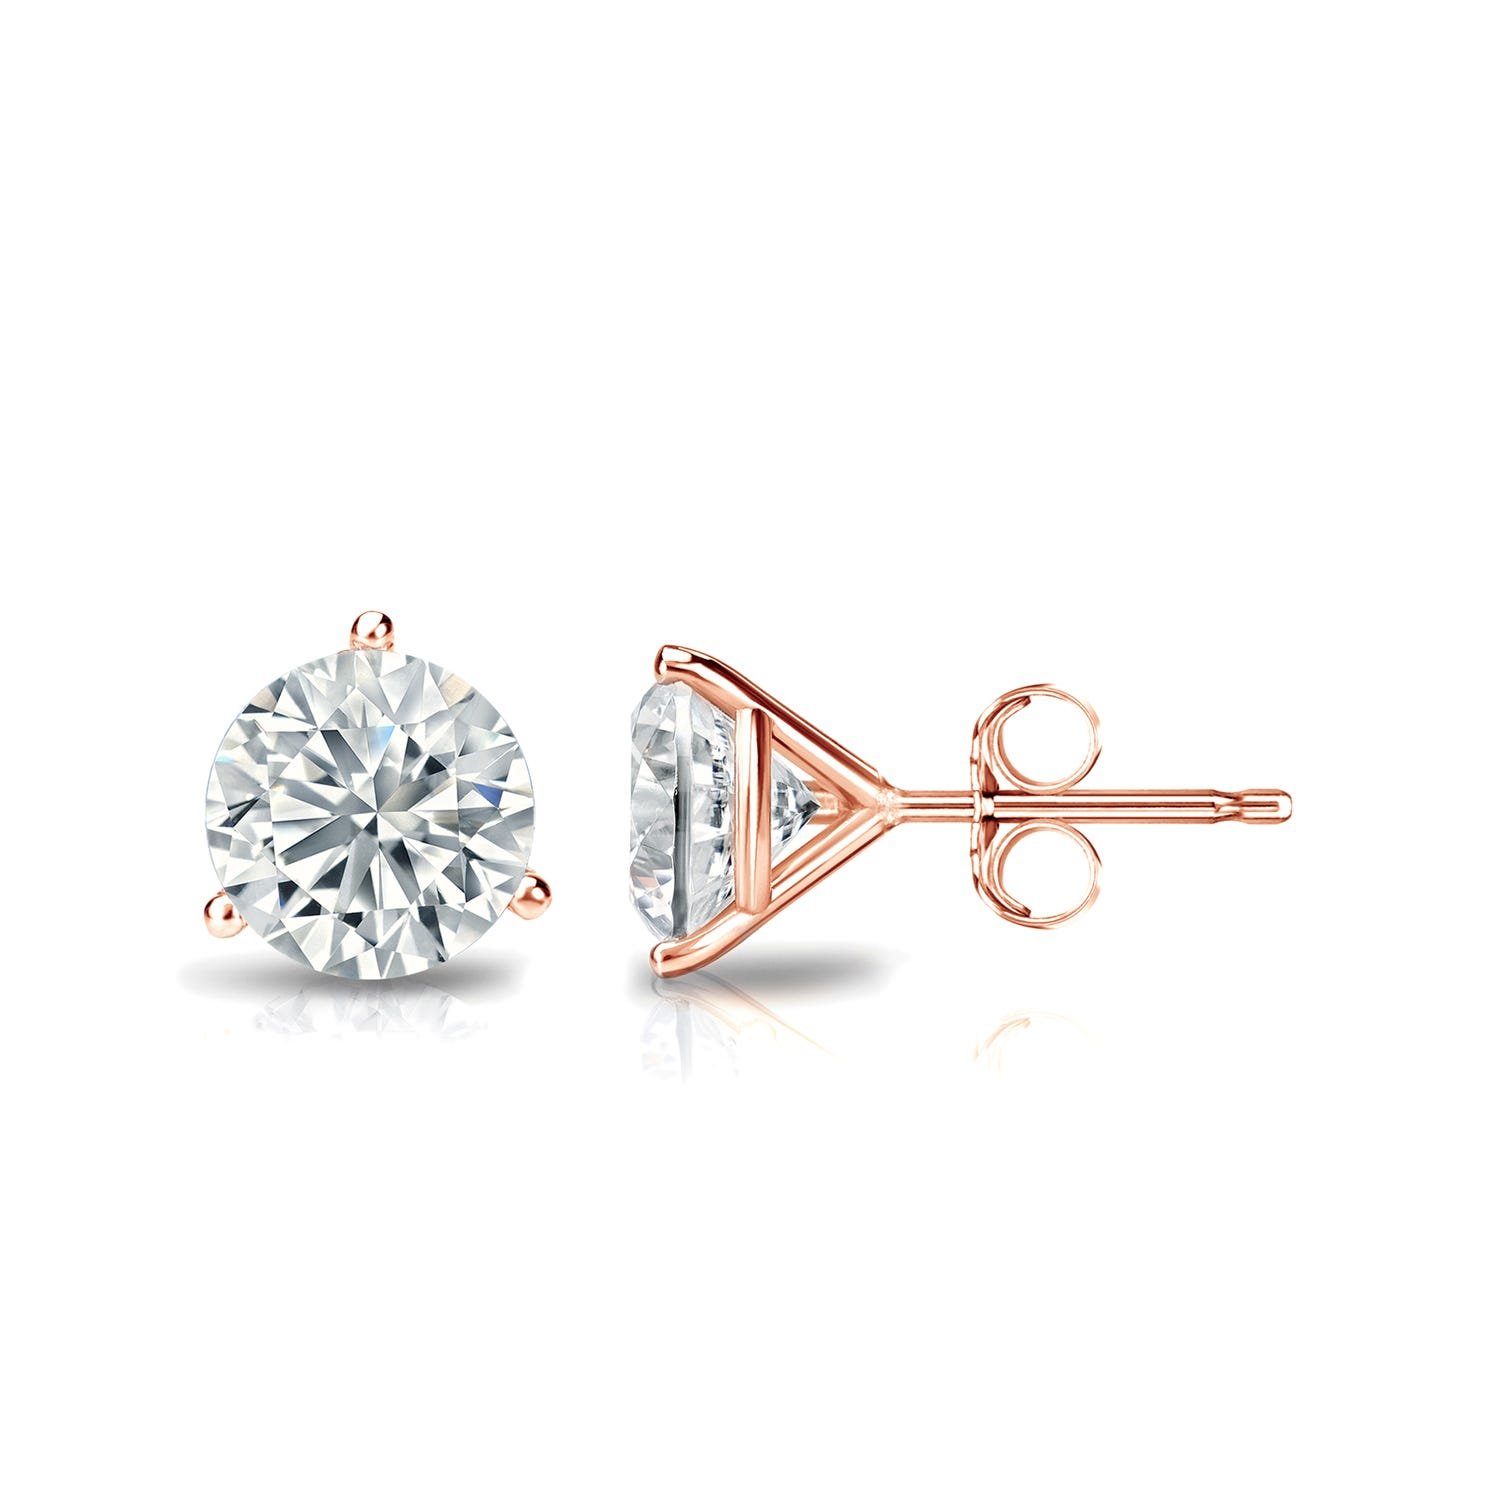 1 CTTW Round Diamond Solitaire Stud Earrings in IJ I1 14K Rose Gold IGI Certified 3-Prong Setting